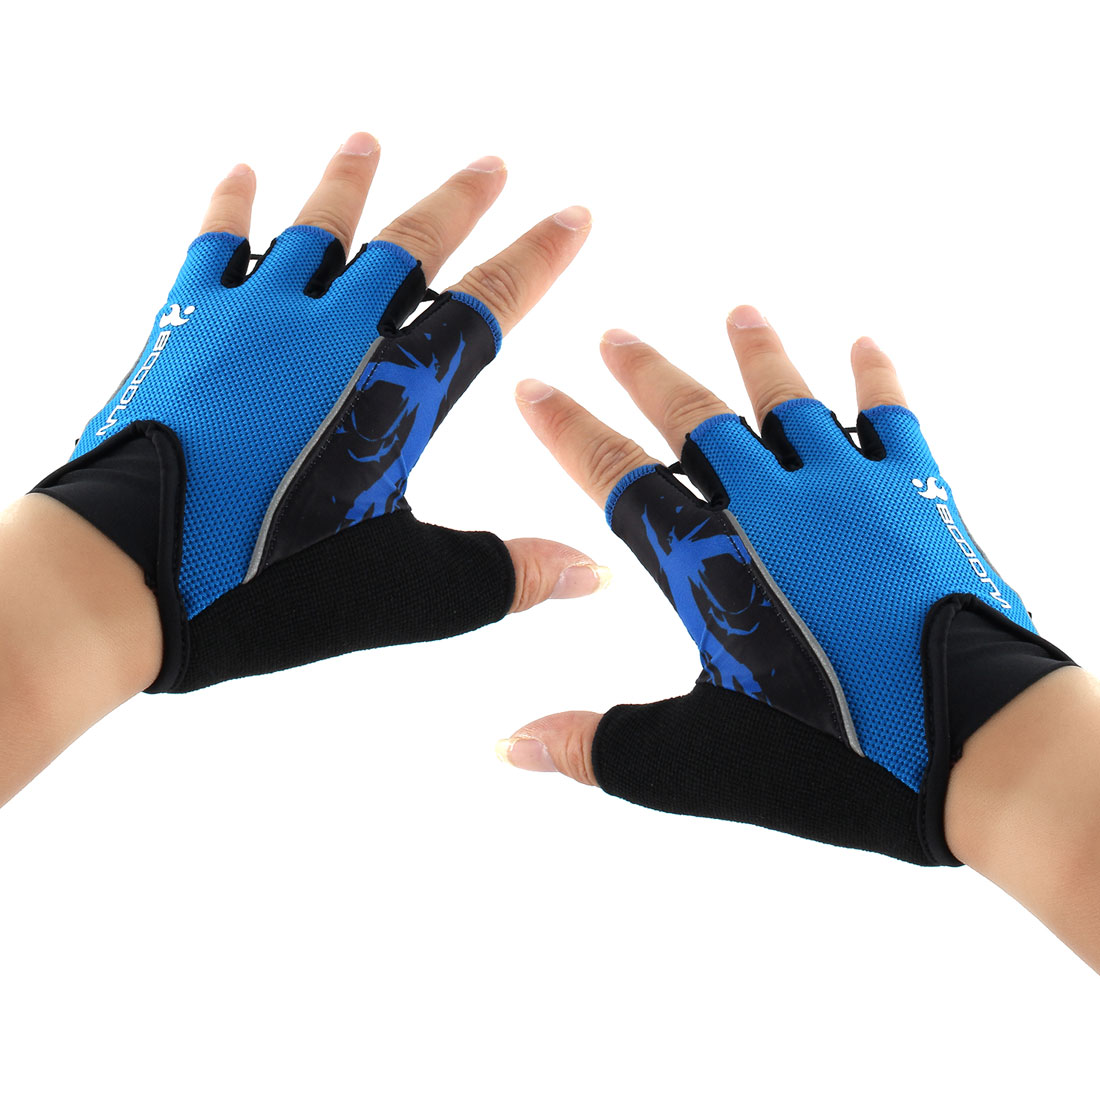 Polyester Exercise Sports Weightlifting Training Workout Protector Half Finger Fitness Gloves Blue M Pair